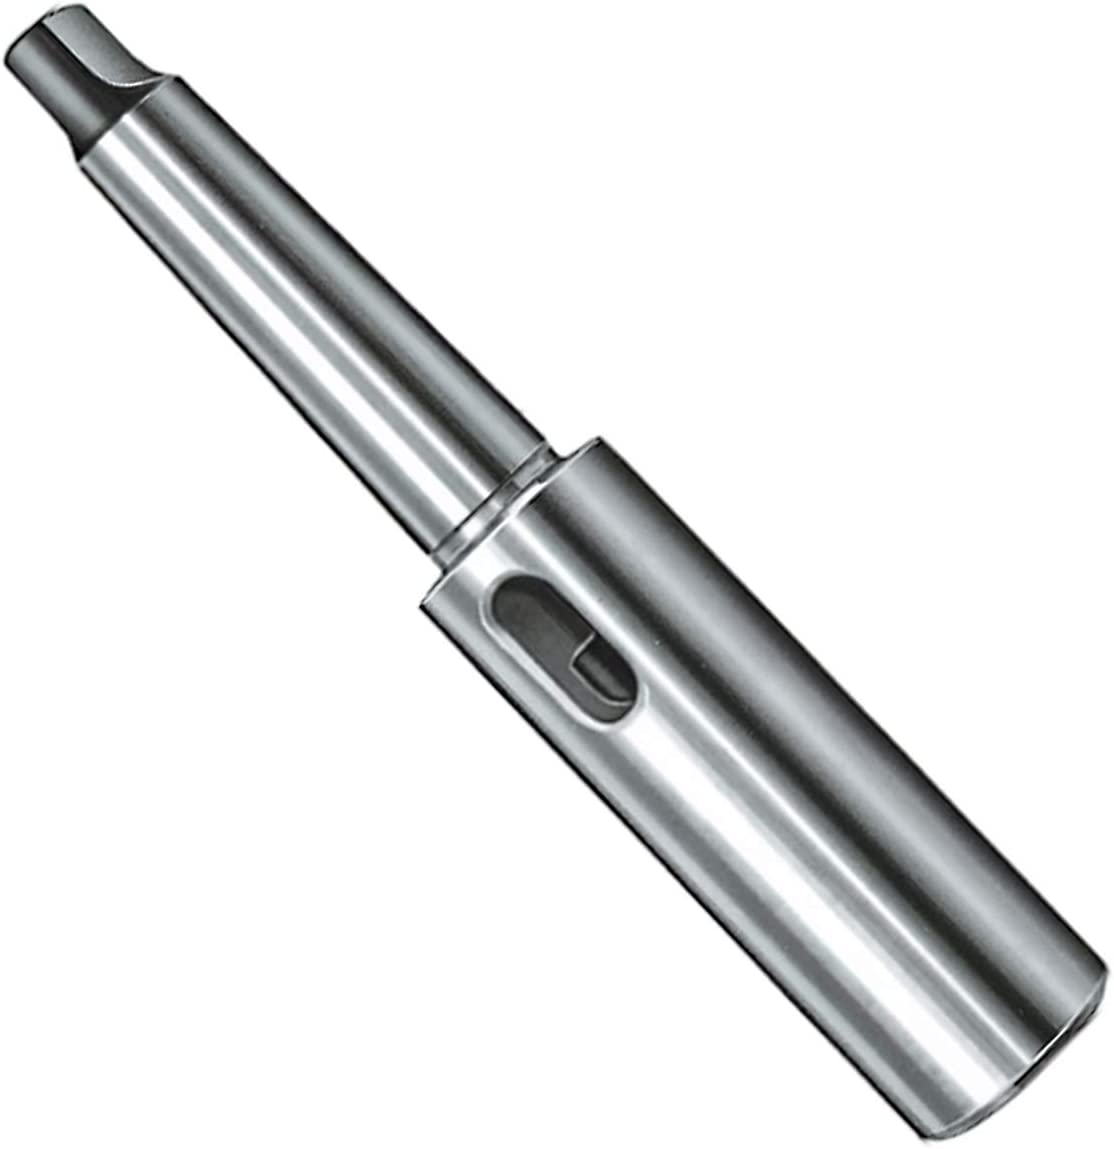 MT 3-3 Taper Adapter SENRISE MT 2-2//2-3//3-3//1-2//3-4 Morse Taper Extension Sleeve Precision Version Drill Tools Reducing Drill Chuck Sleeve Lathes Machine Part